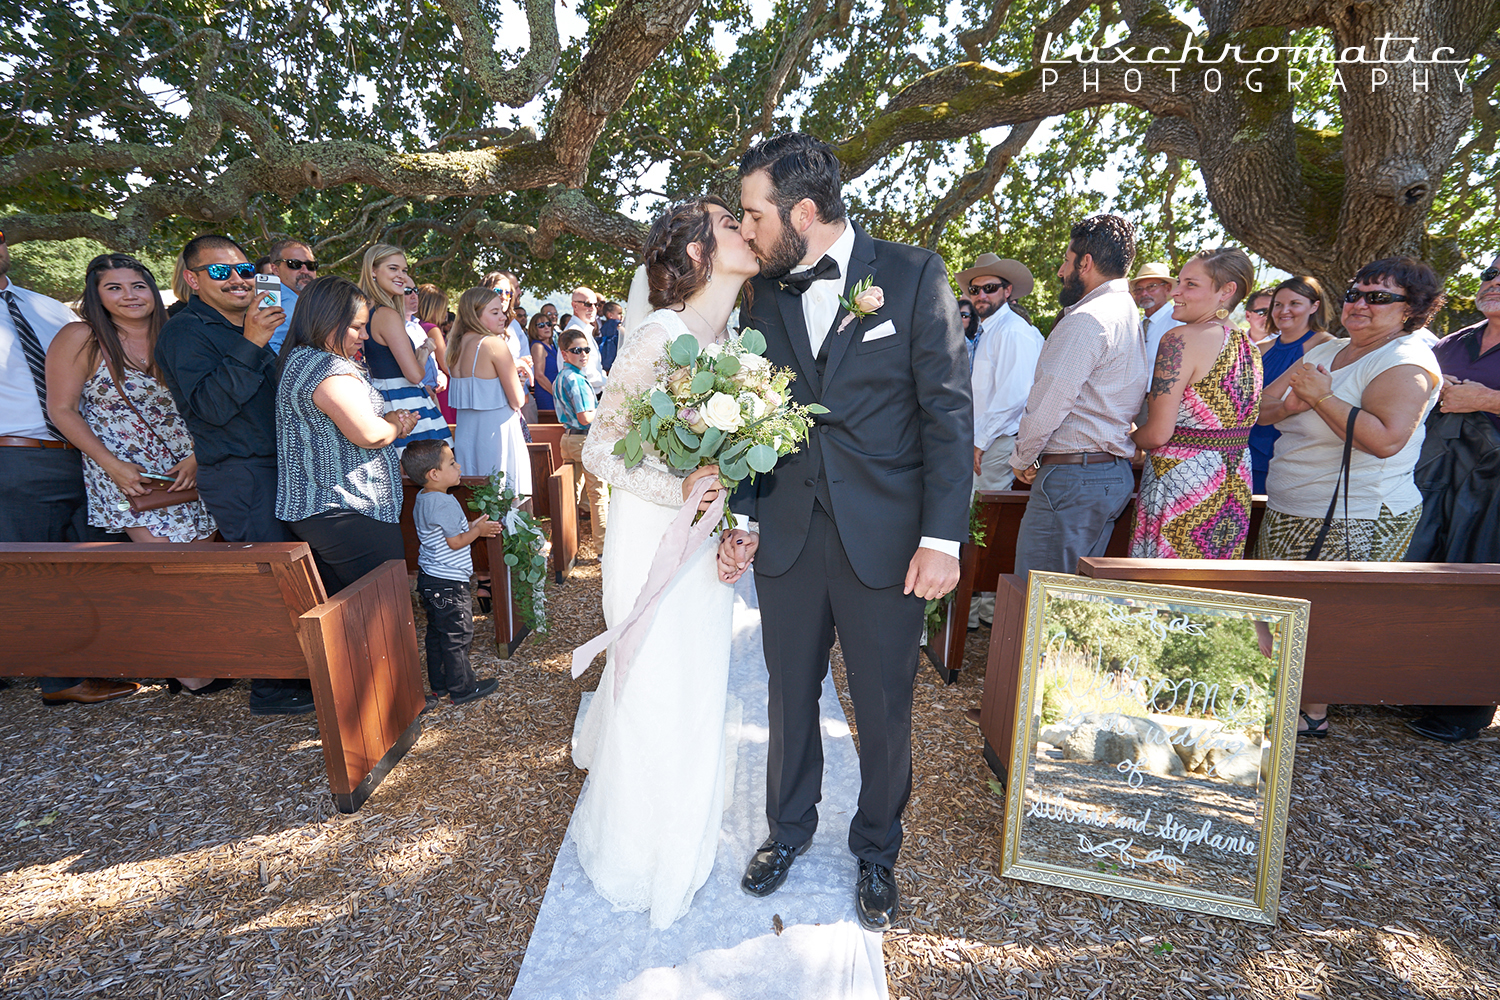 070817_Steph_Sil-San-Francisco-Bay-Area-Carmel-Valley-Monterey-Bay-California-Wedding-Los-Laureles-Lodge-Bride-Gown-Dress-Groom-Engaged-Knot-Bridesmaids-Luxchromatic-Portrait-Sony-Alpha-a7Rii-Interfit-Profoto-Best-Photographer-Photography-0464 copy.jpg